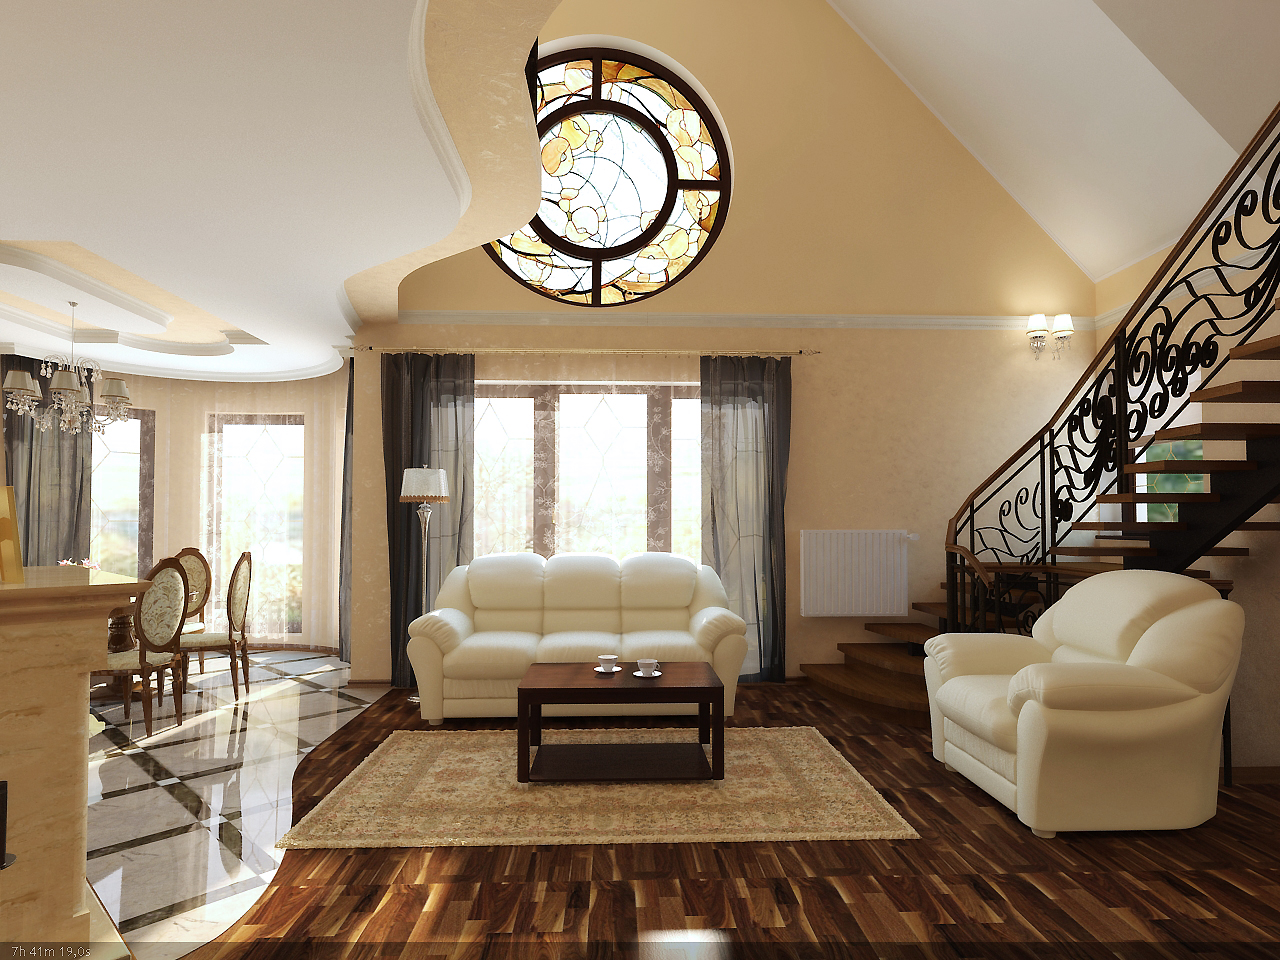 Home Interiors Design Classic Interior Design